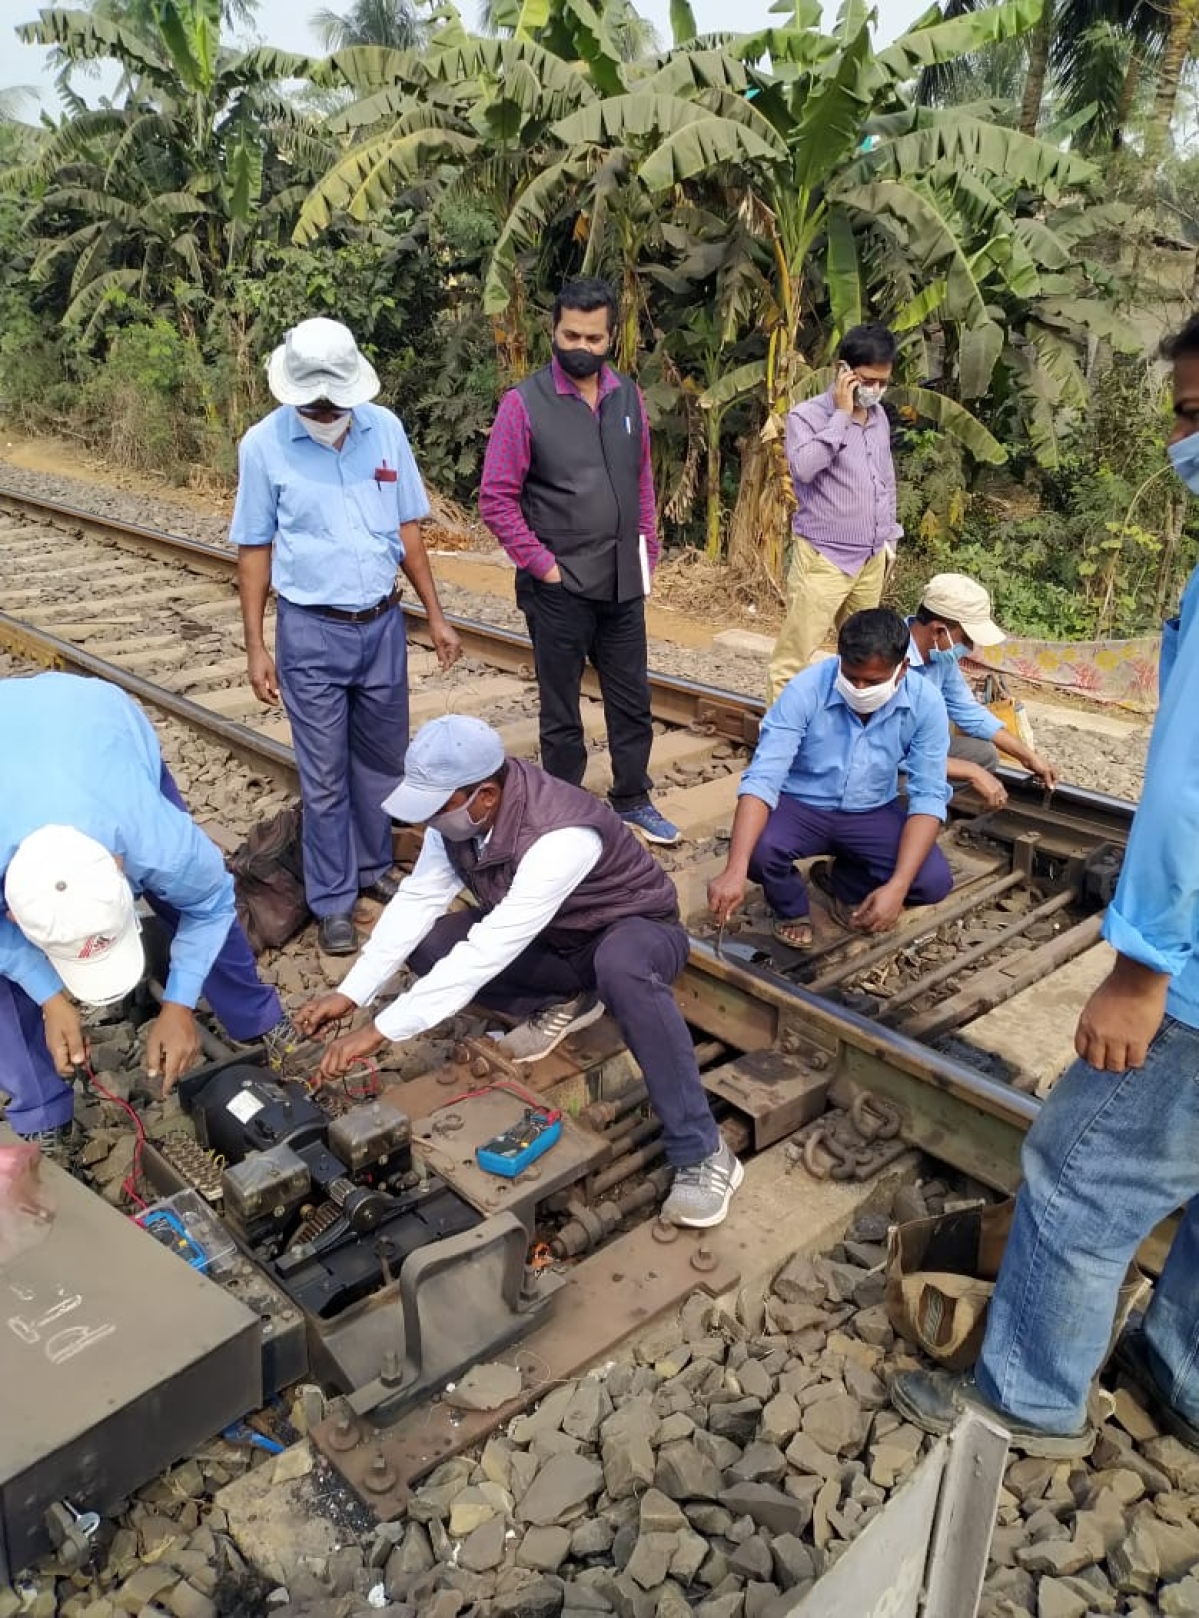 South Eastern Railway attains remarkable progress in safety-related works of signal & telecommunication amid lockdown